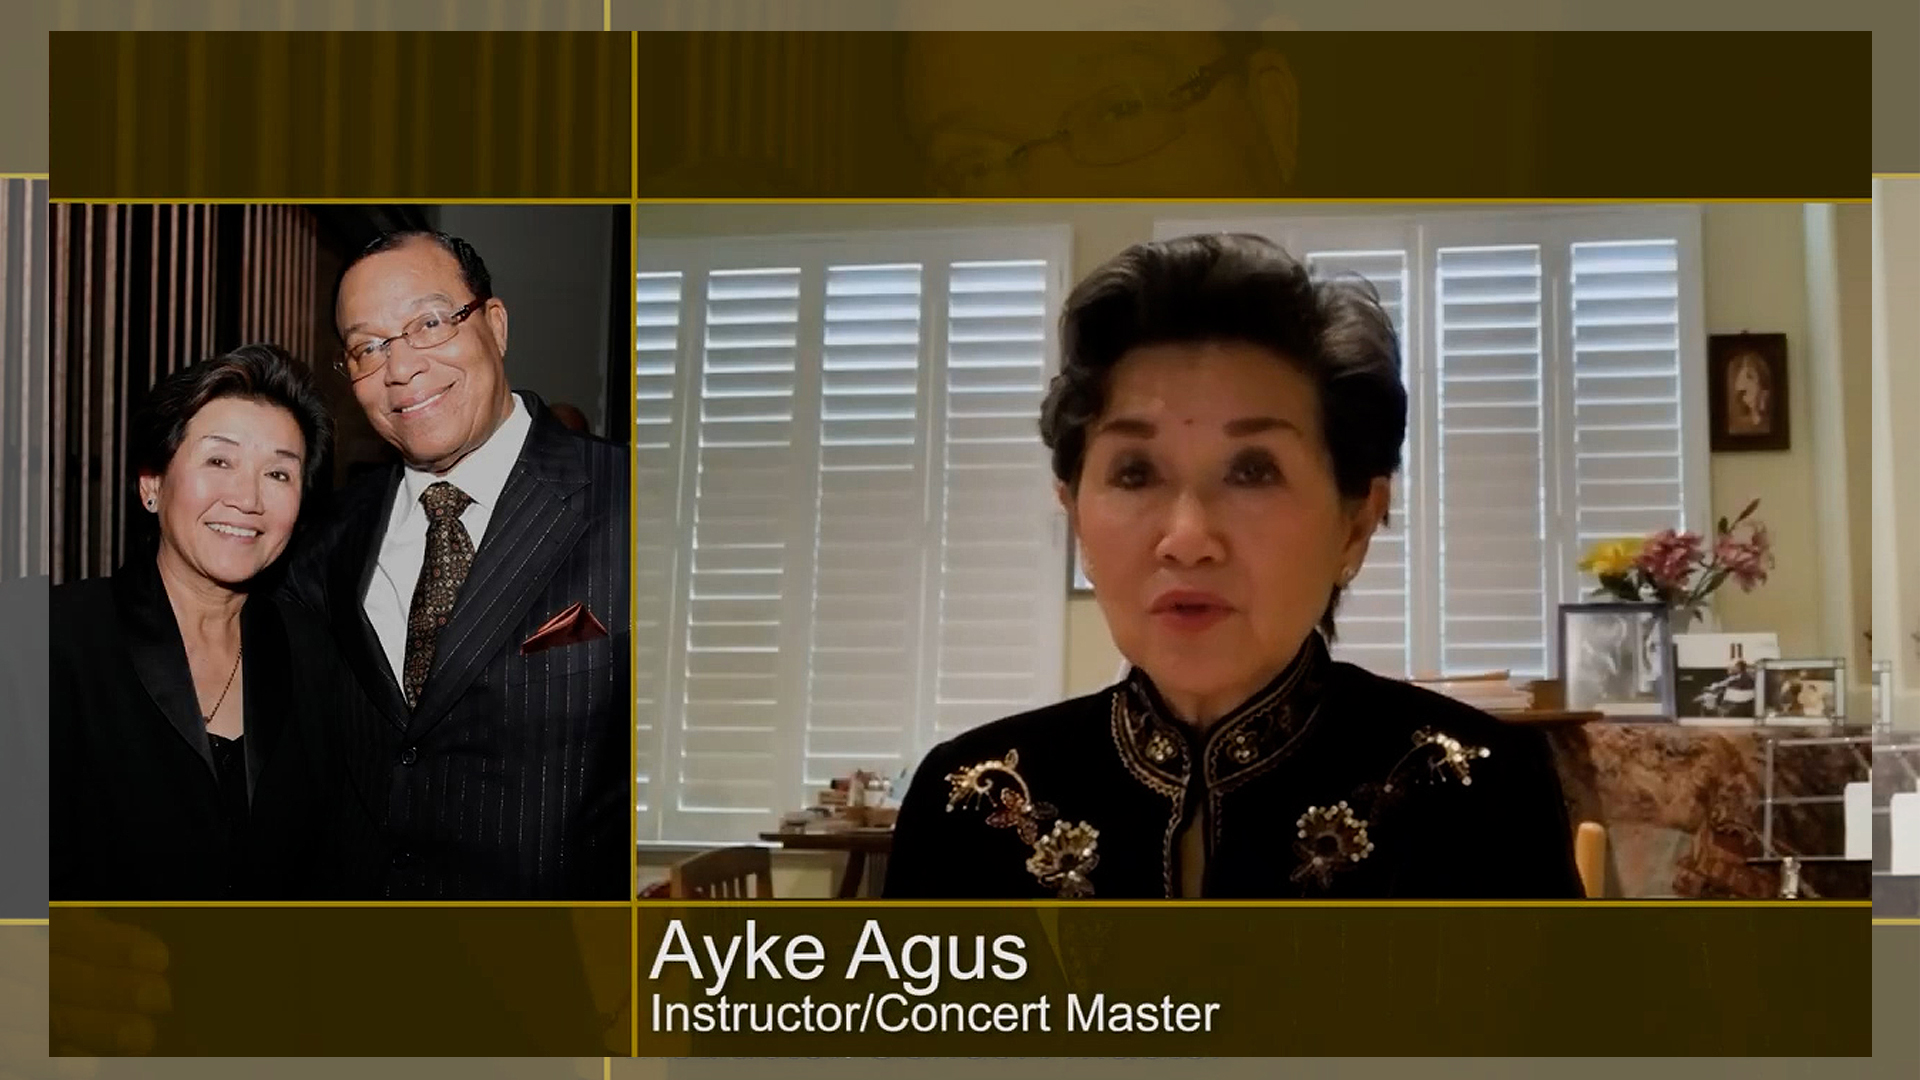 Dr. Ayke Agus testimony of Minister Louis Farrakhan and The Beethoven Violin Concerto